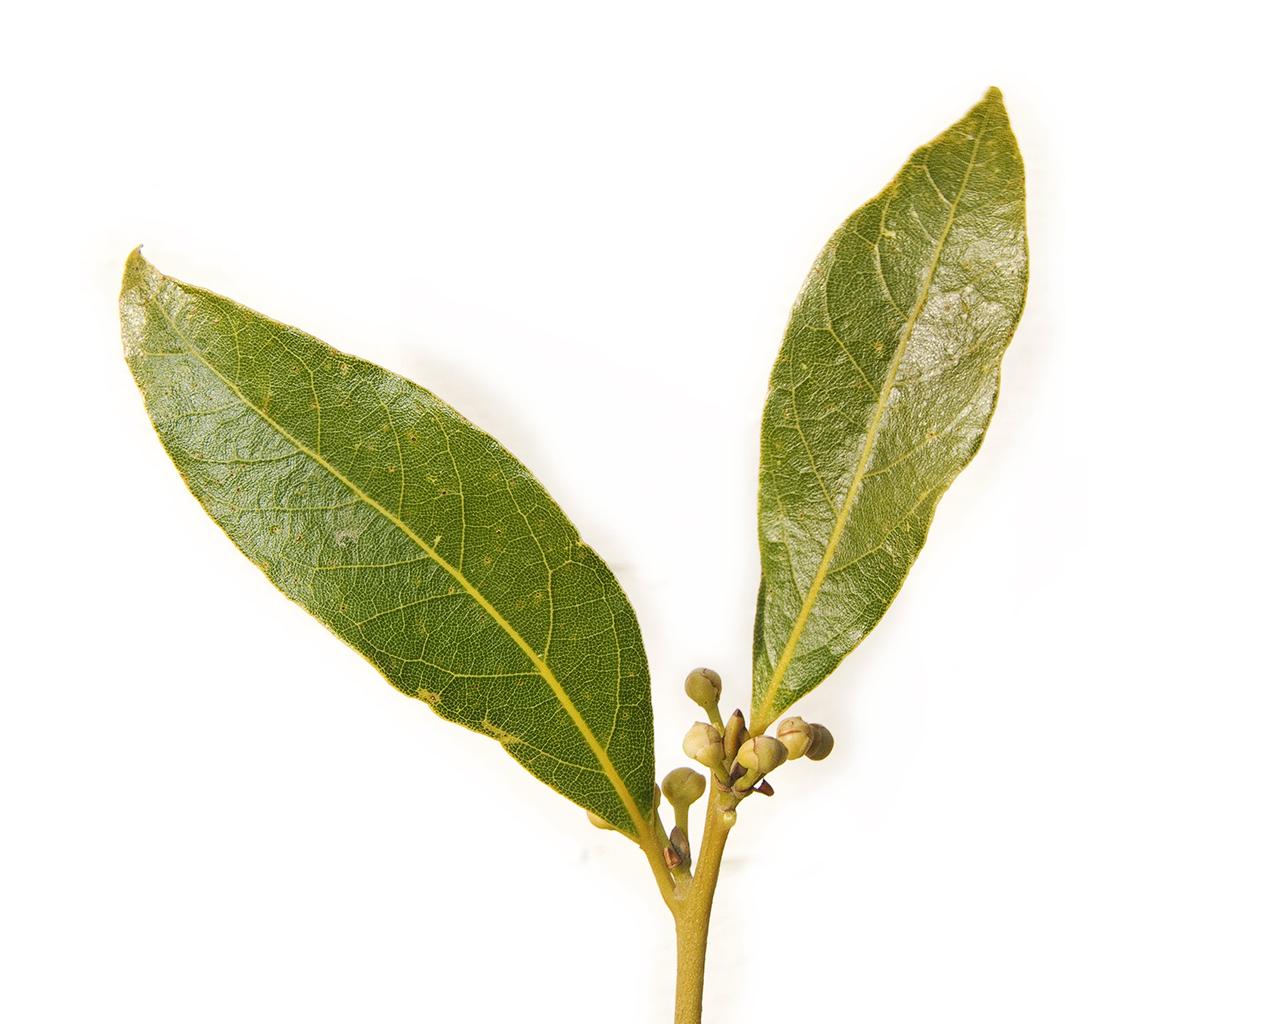 laurel used in Aleppo soap